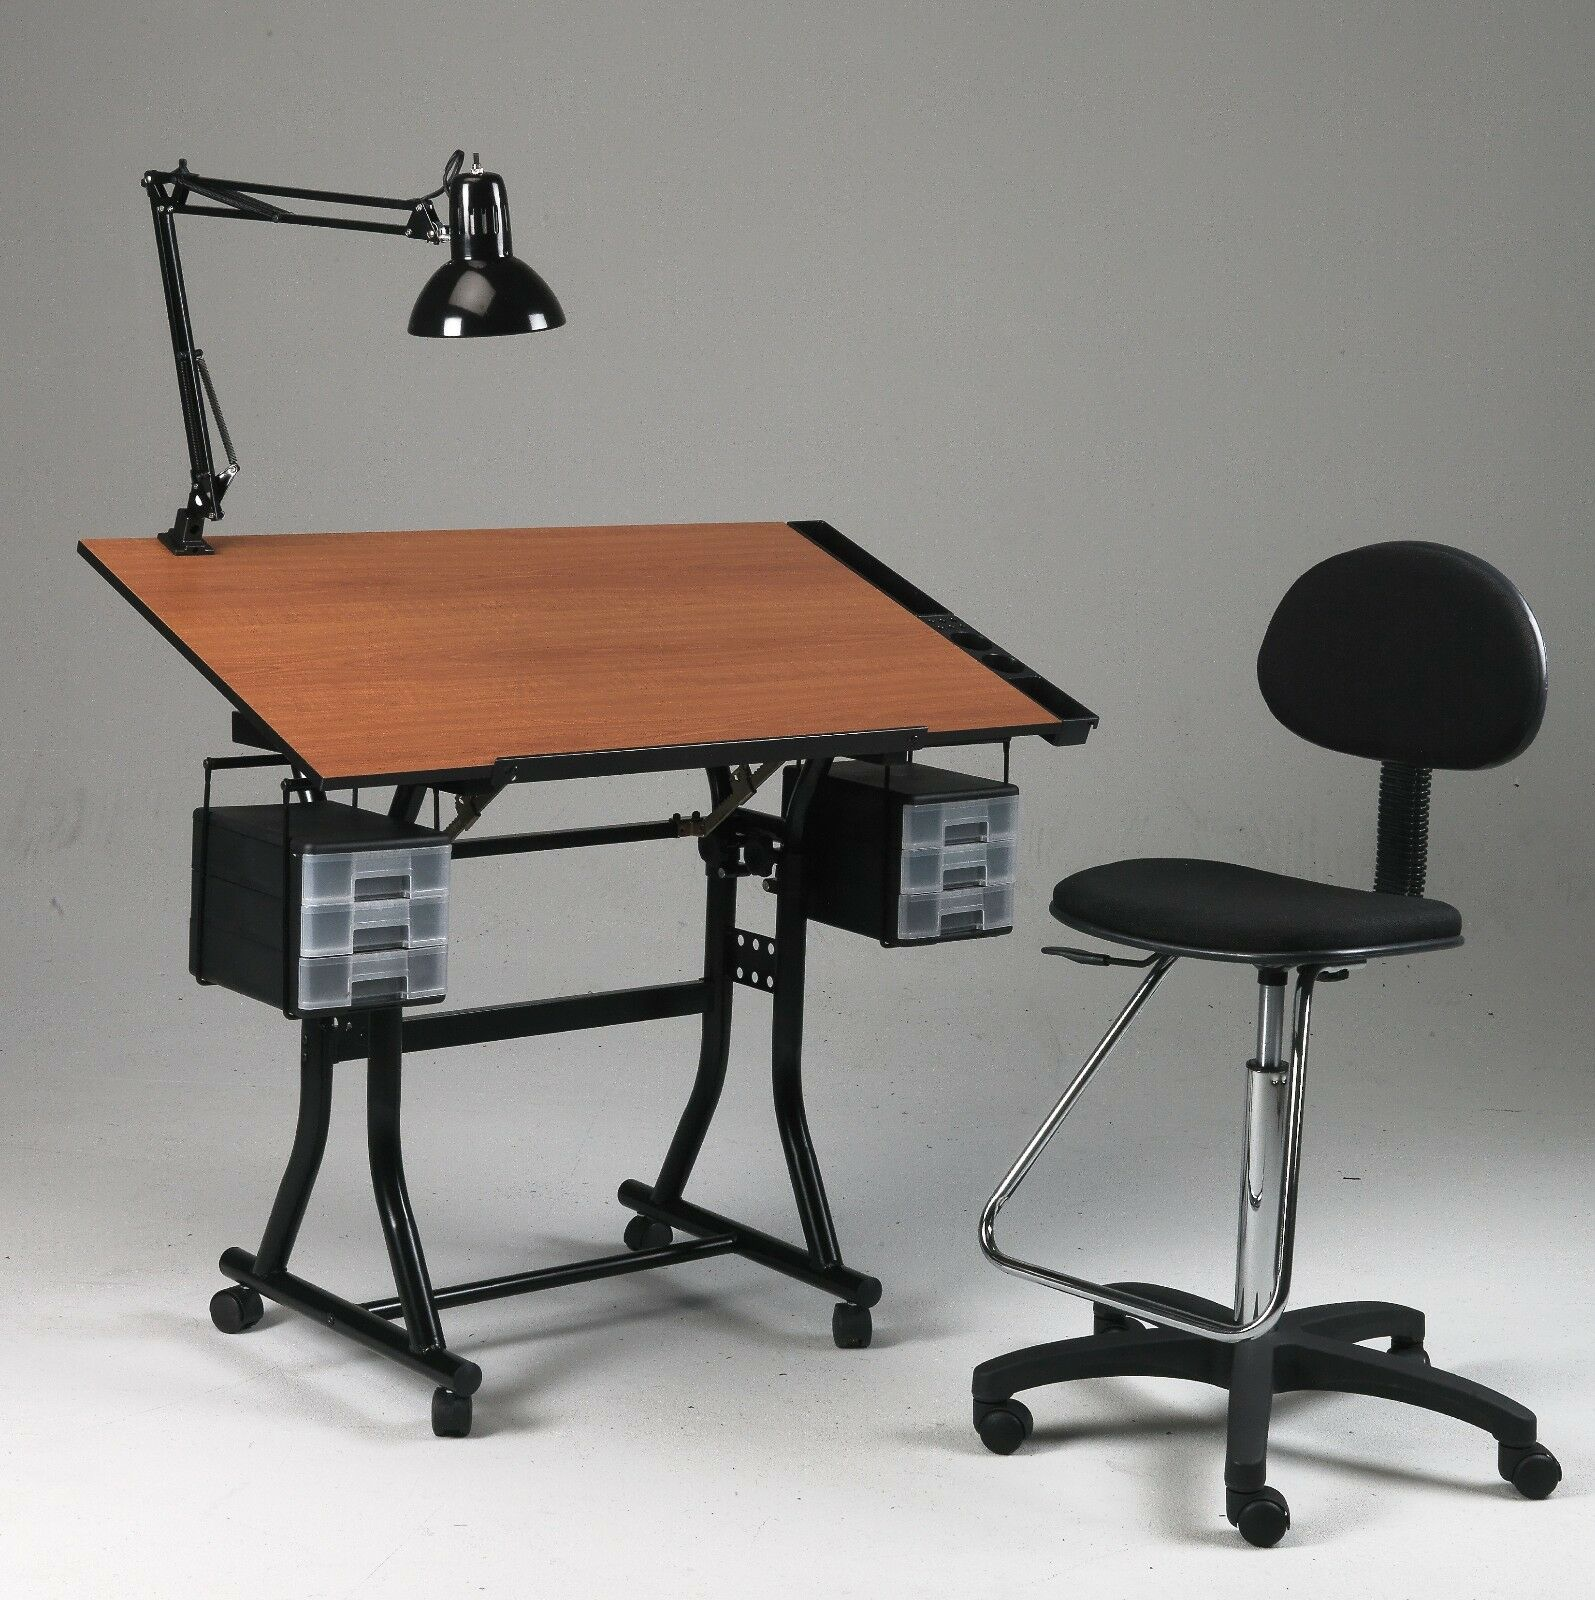 drafting table chairs swivel chair outdoor black drawing art hobby craft desk w